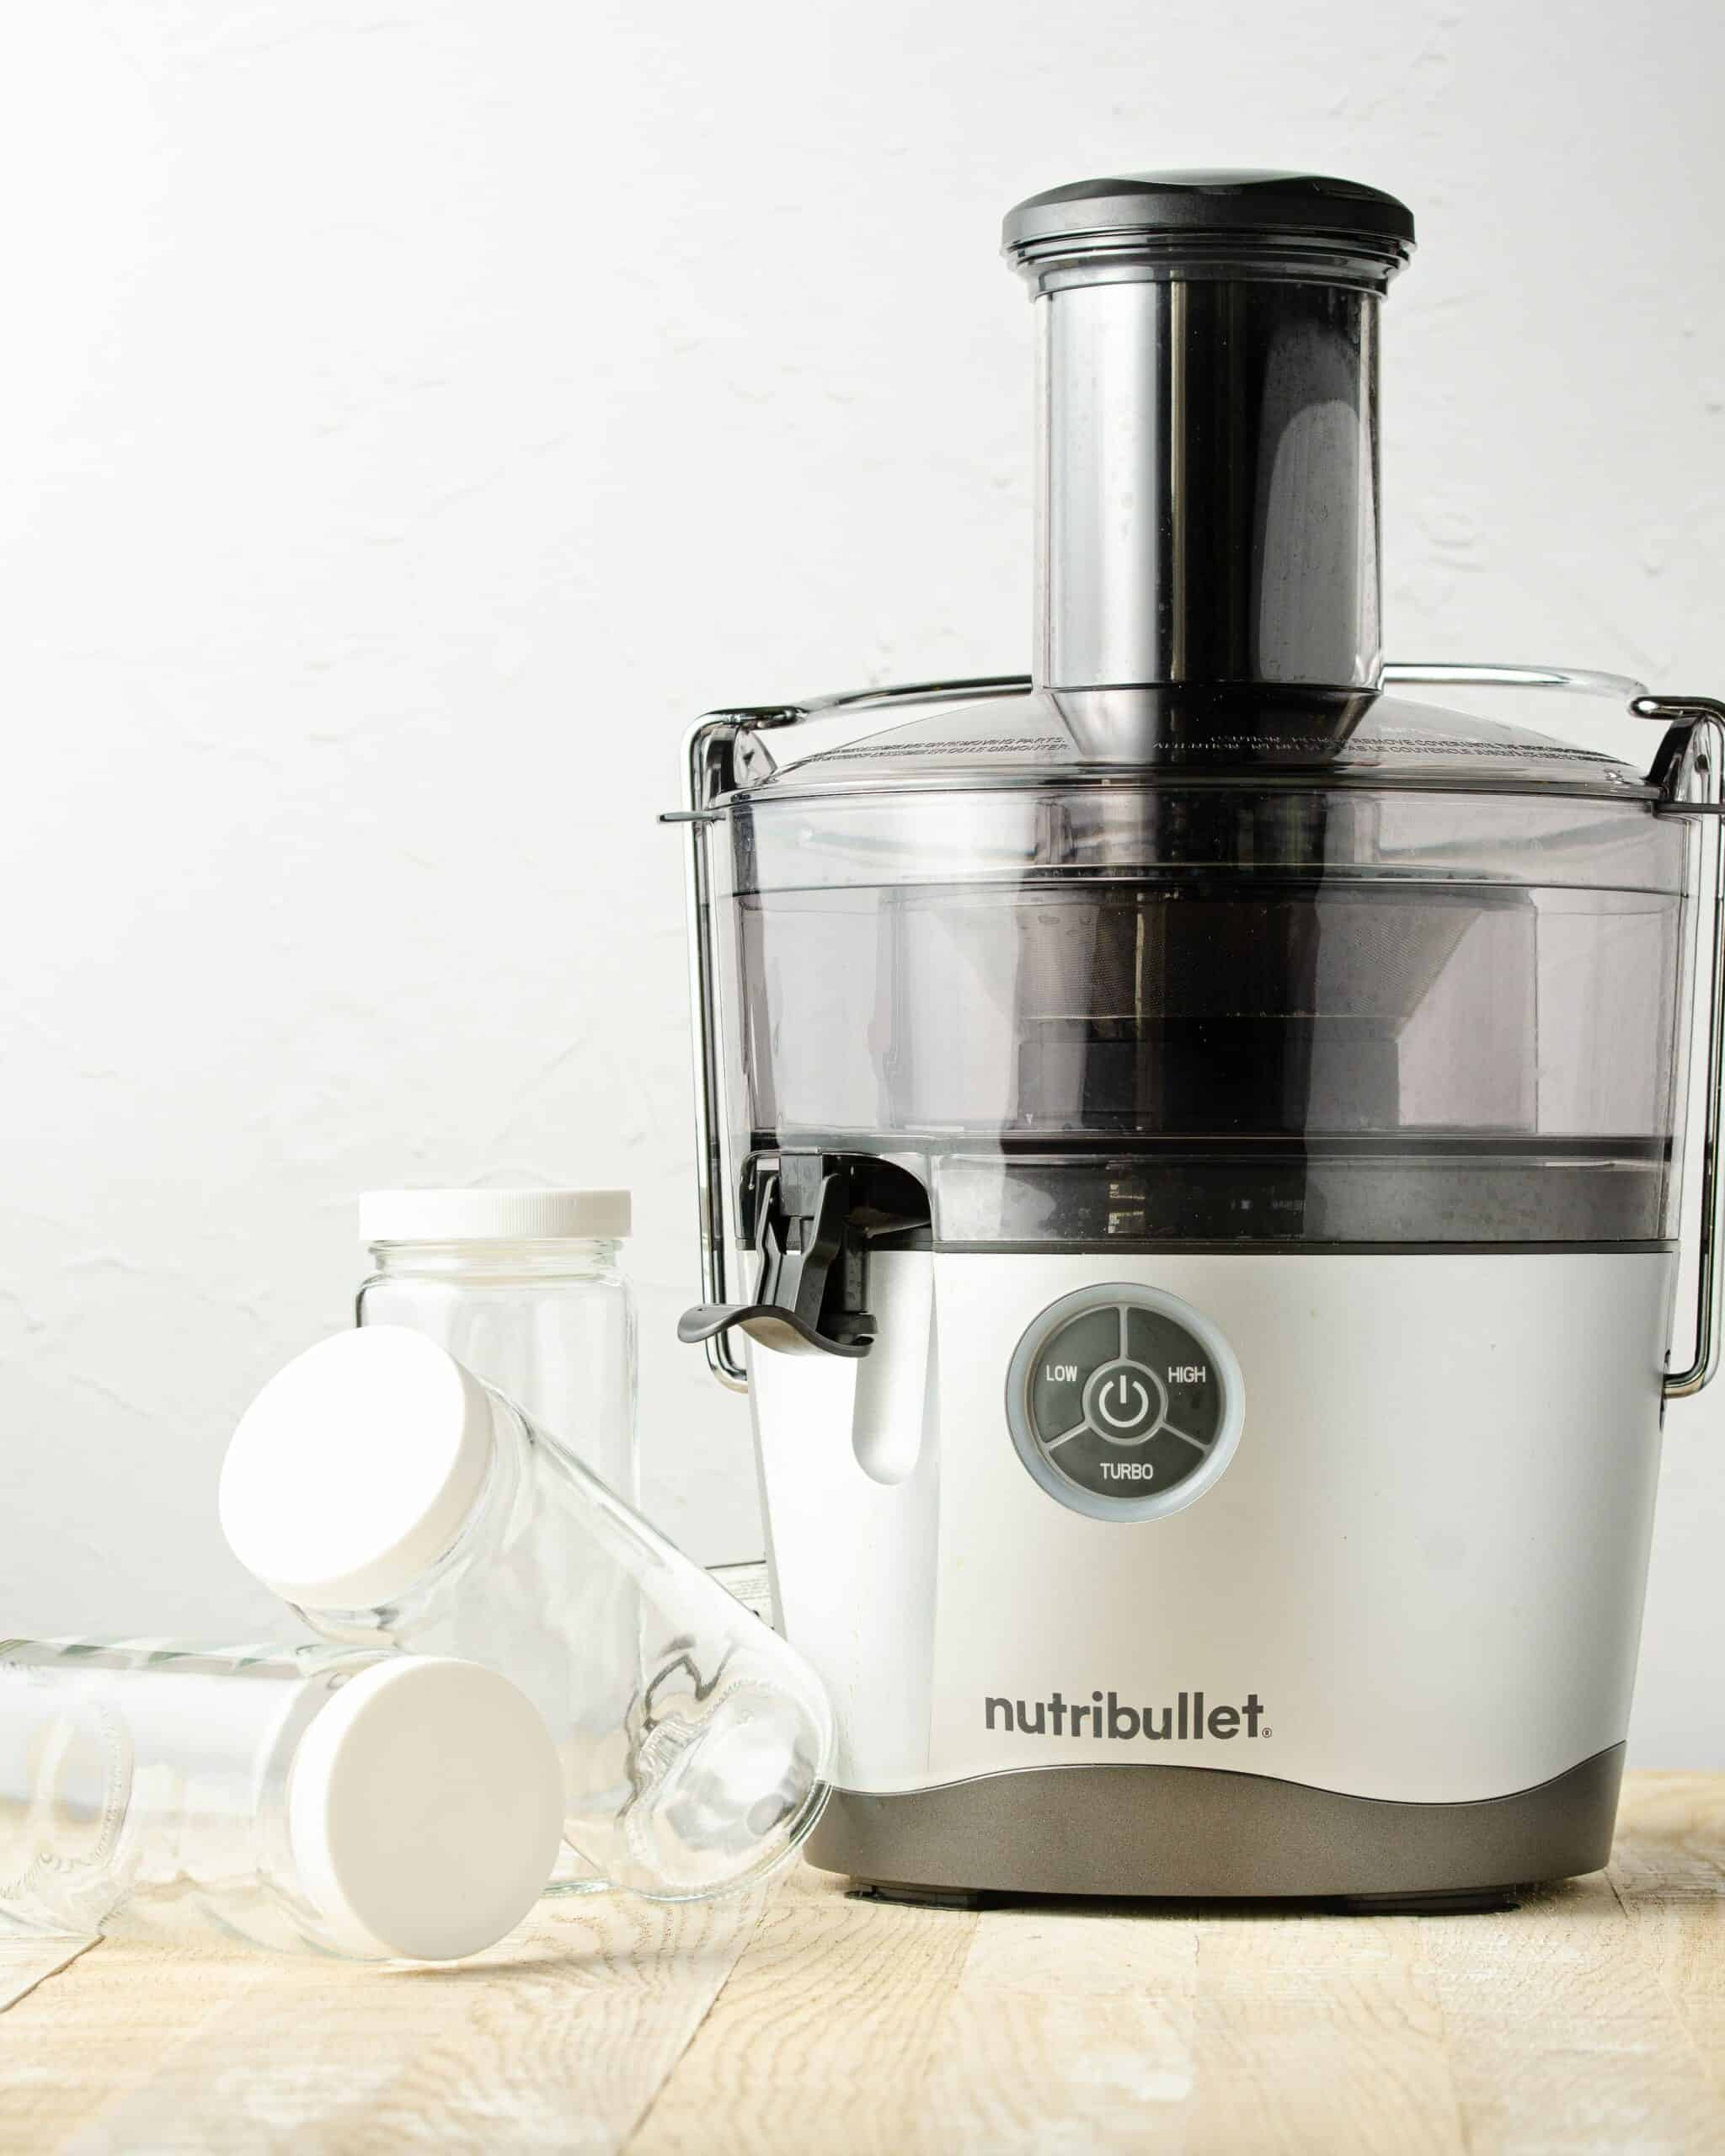 a Nutribullet Pro Juicer with three glass bottles for homemade juice to the left side